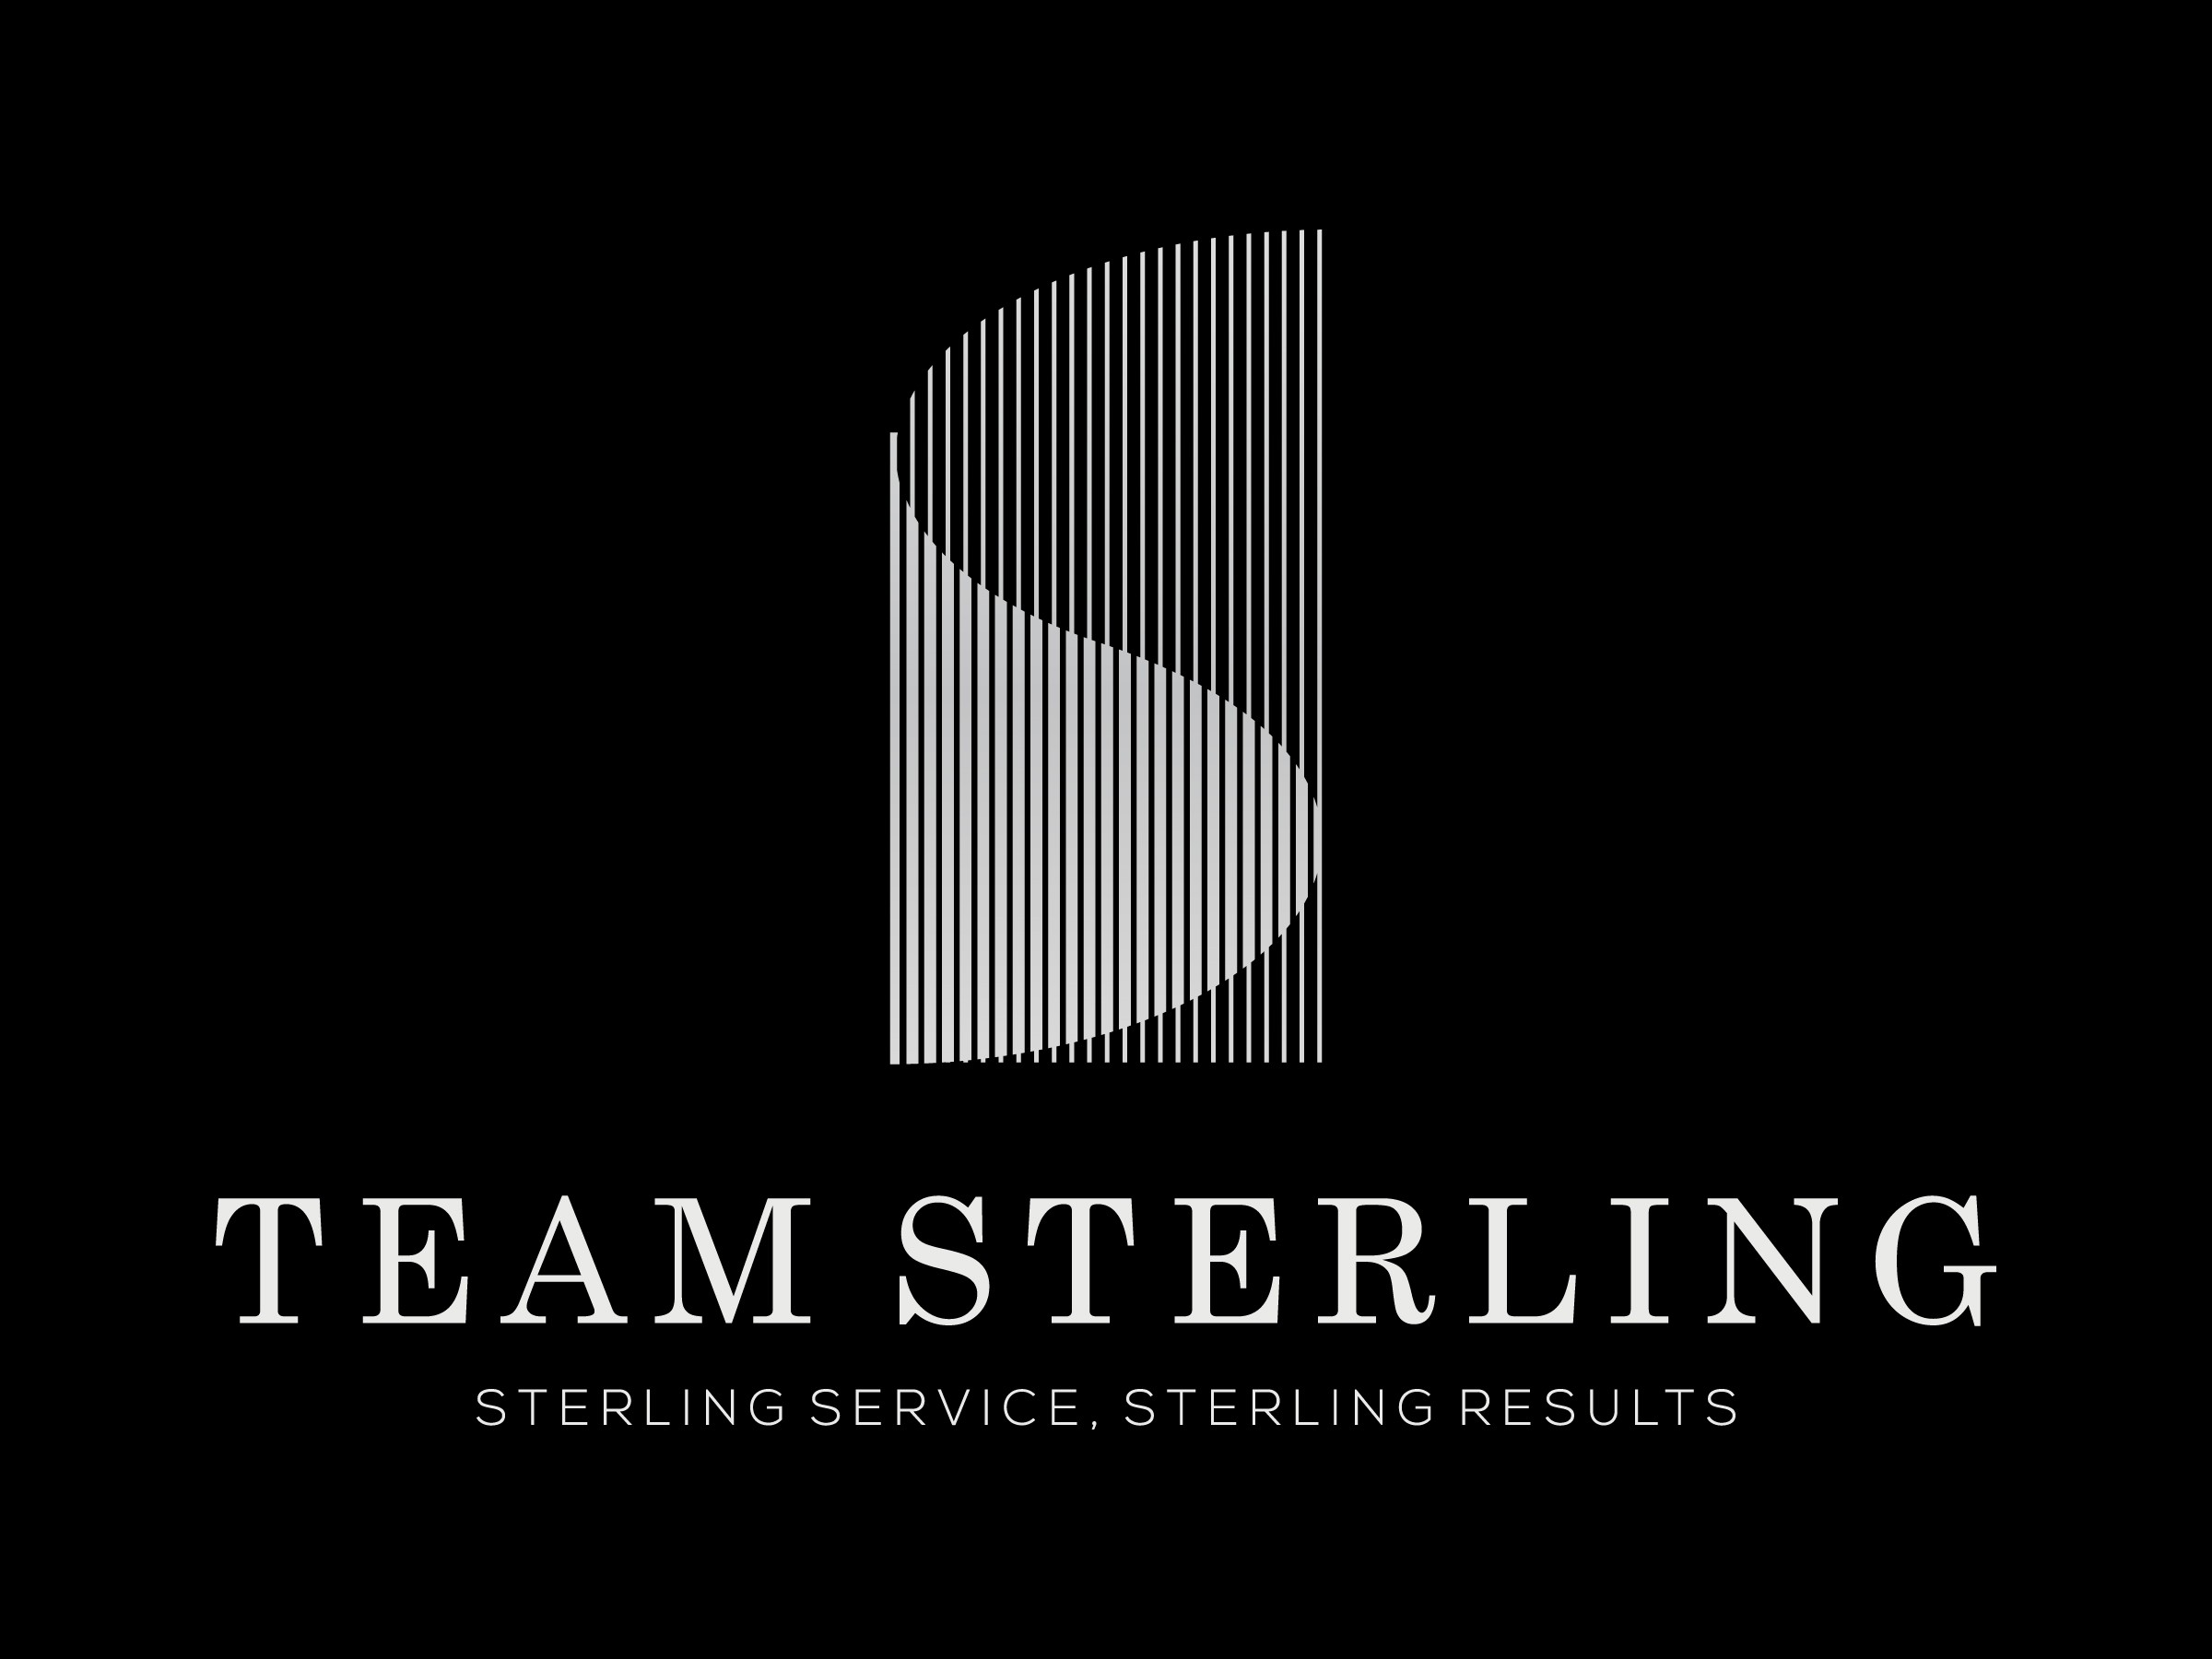 Logo for high-end residential real estate sales team